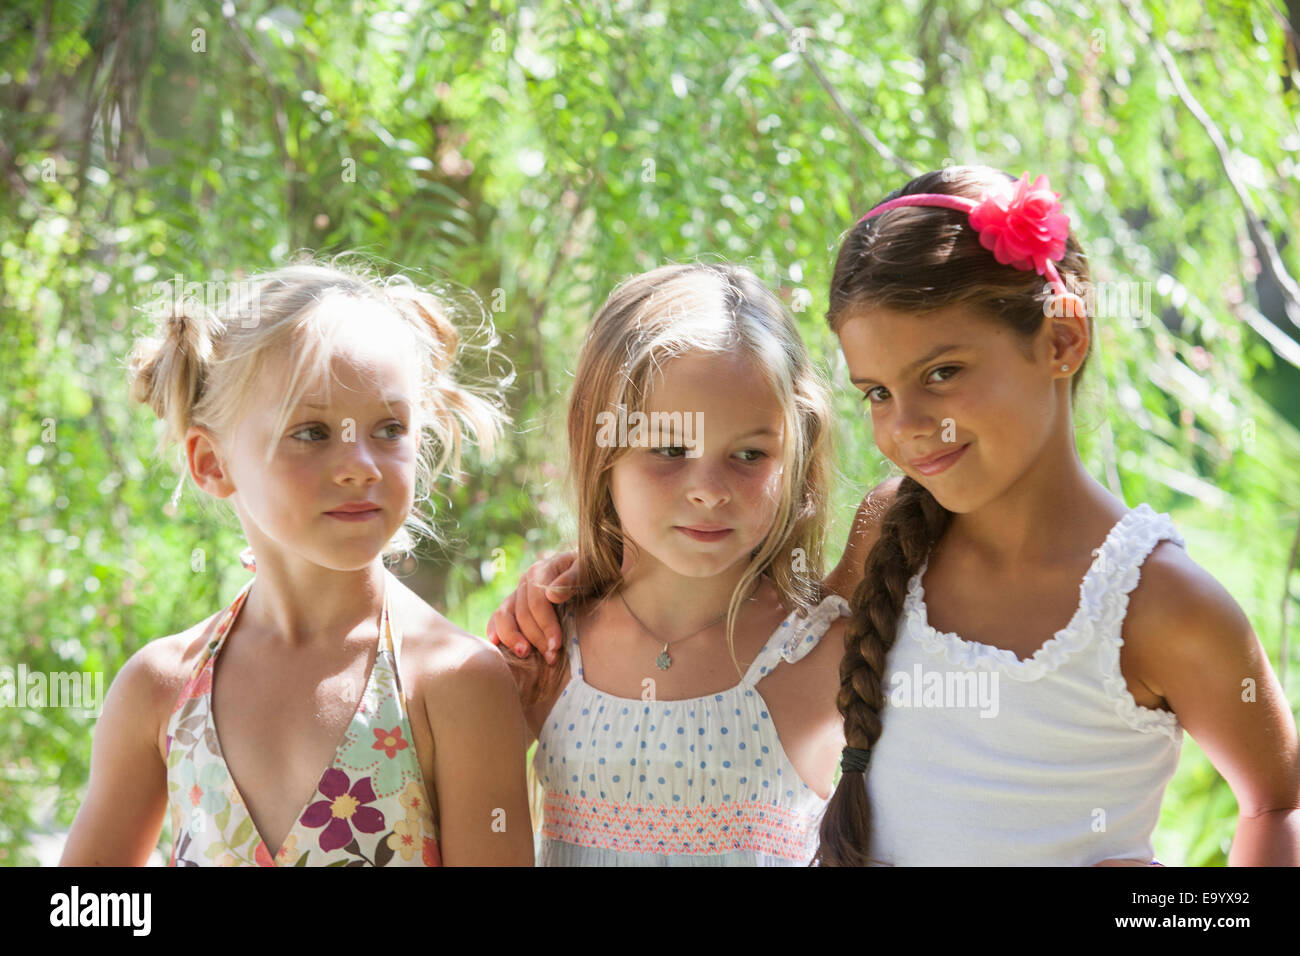 Portrait de trois francs in garden Photo Stock